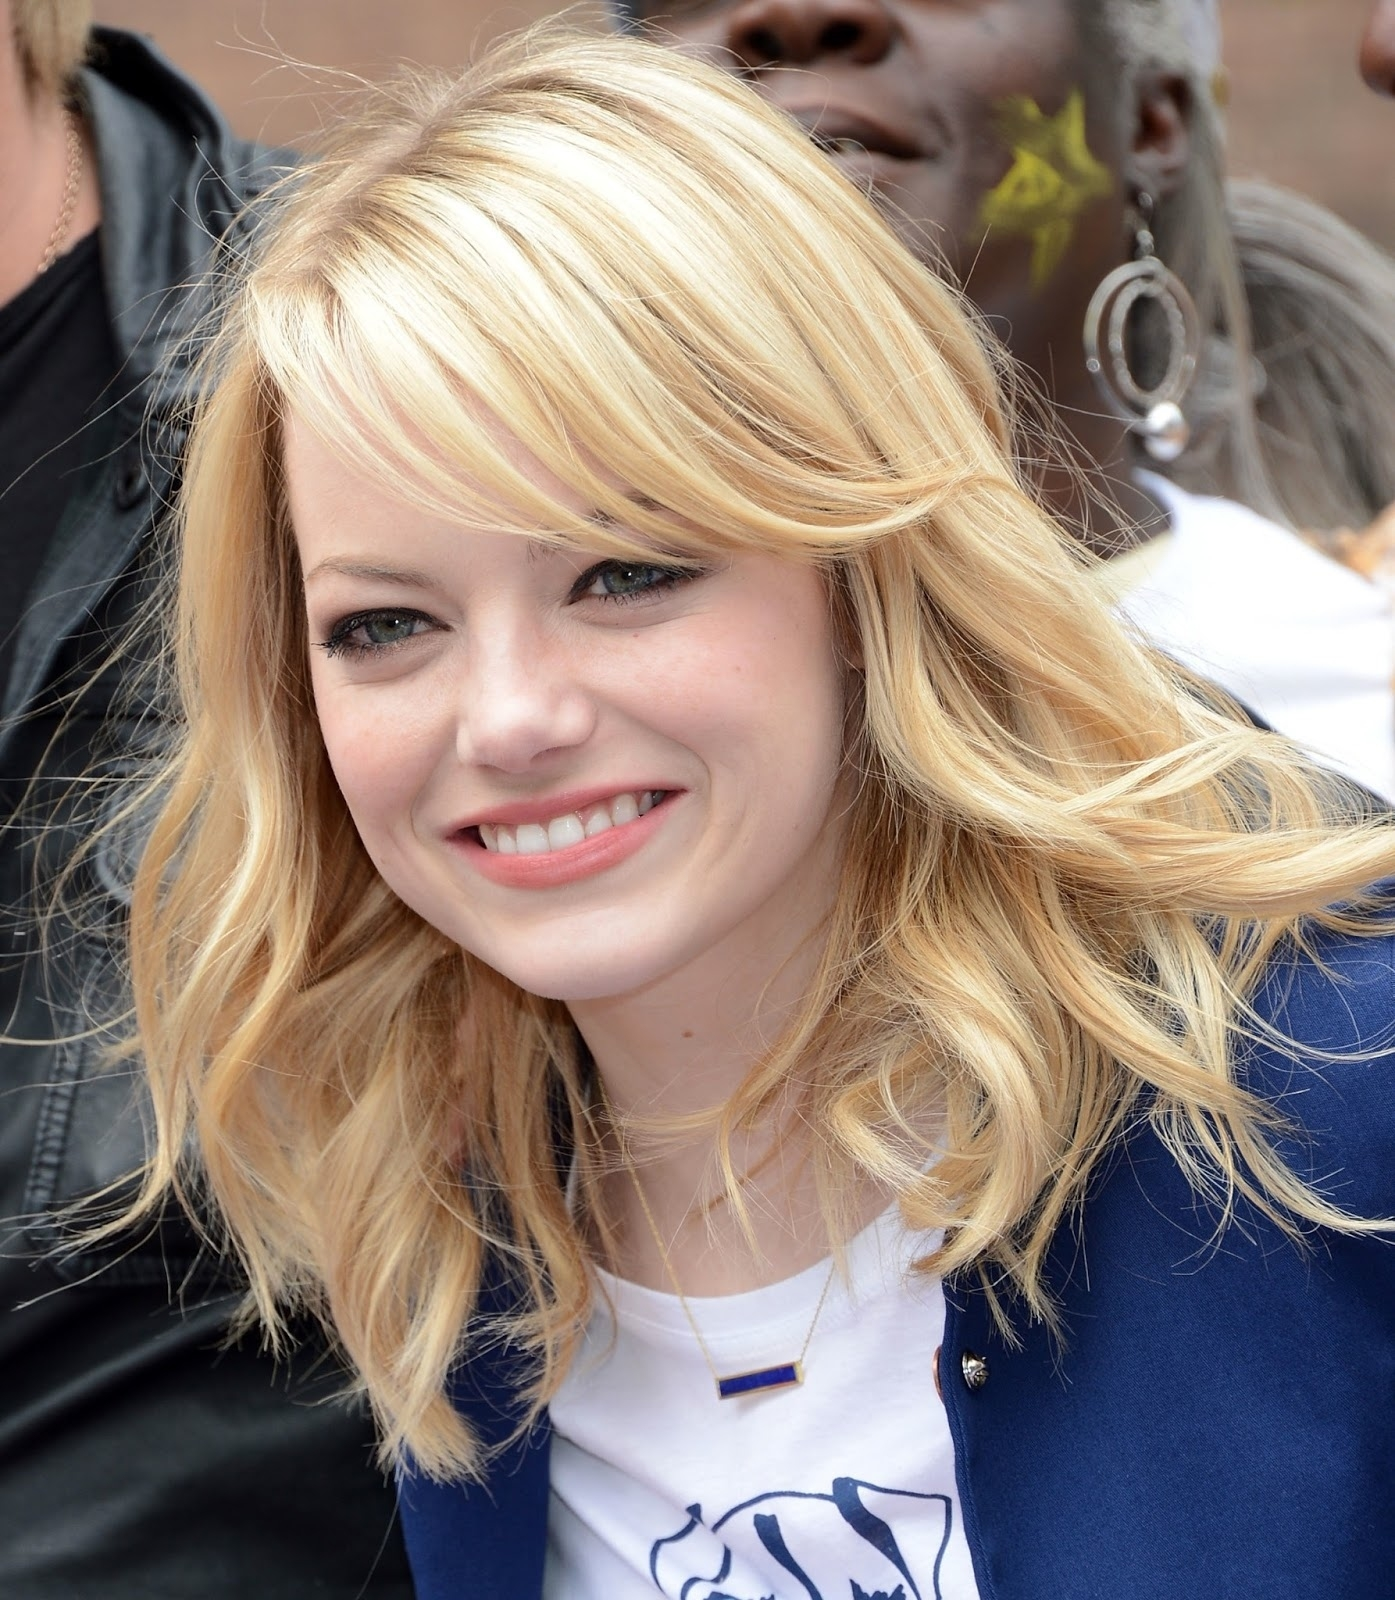 7 Best Haircuts For Round Face - Mabh Blog regarding Haircuts For Round Face With Names